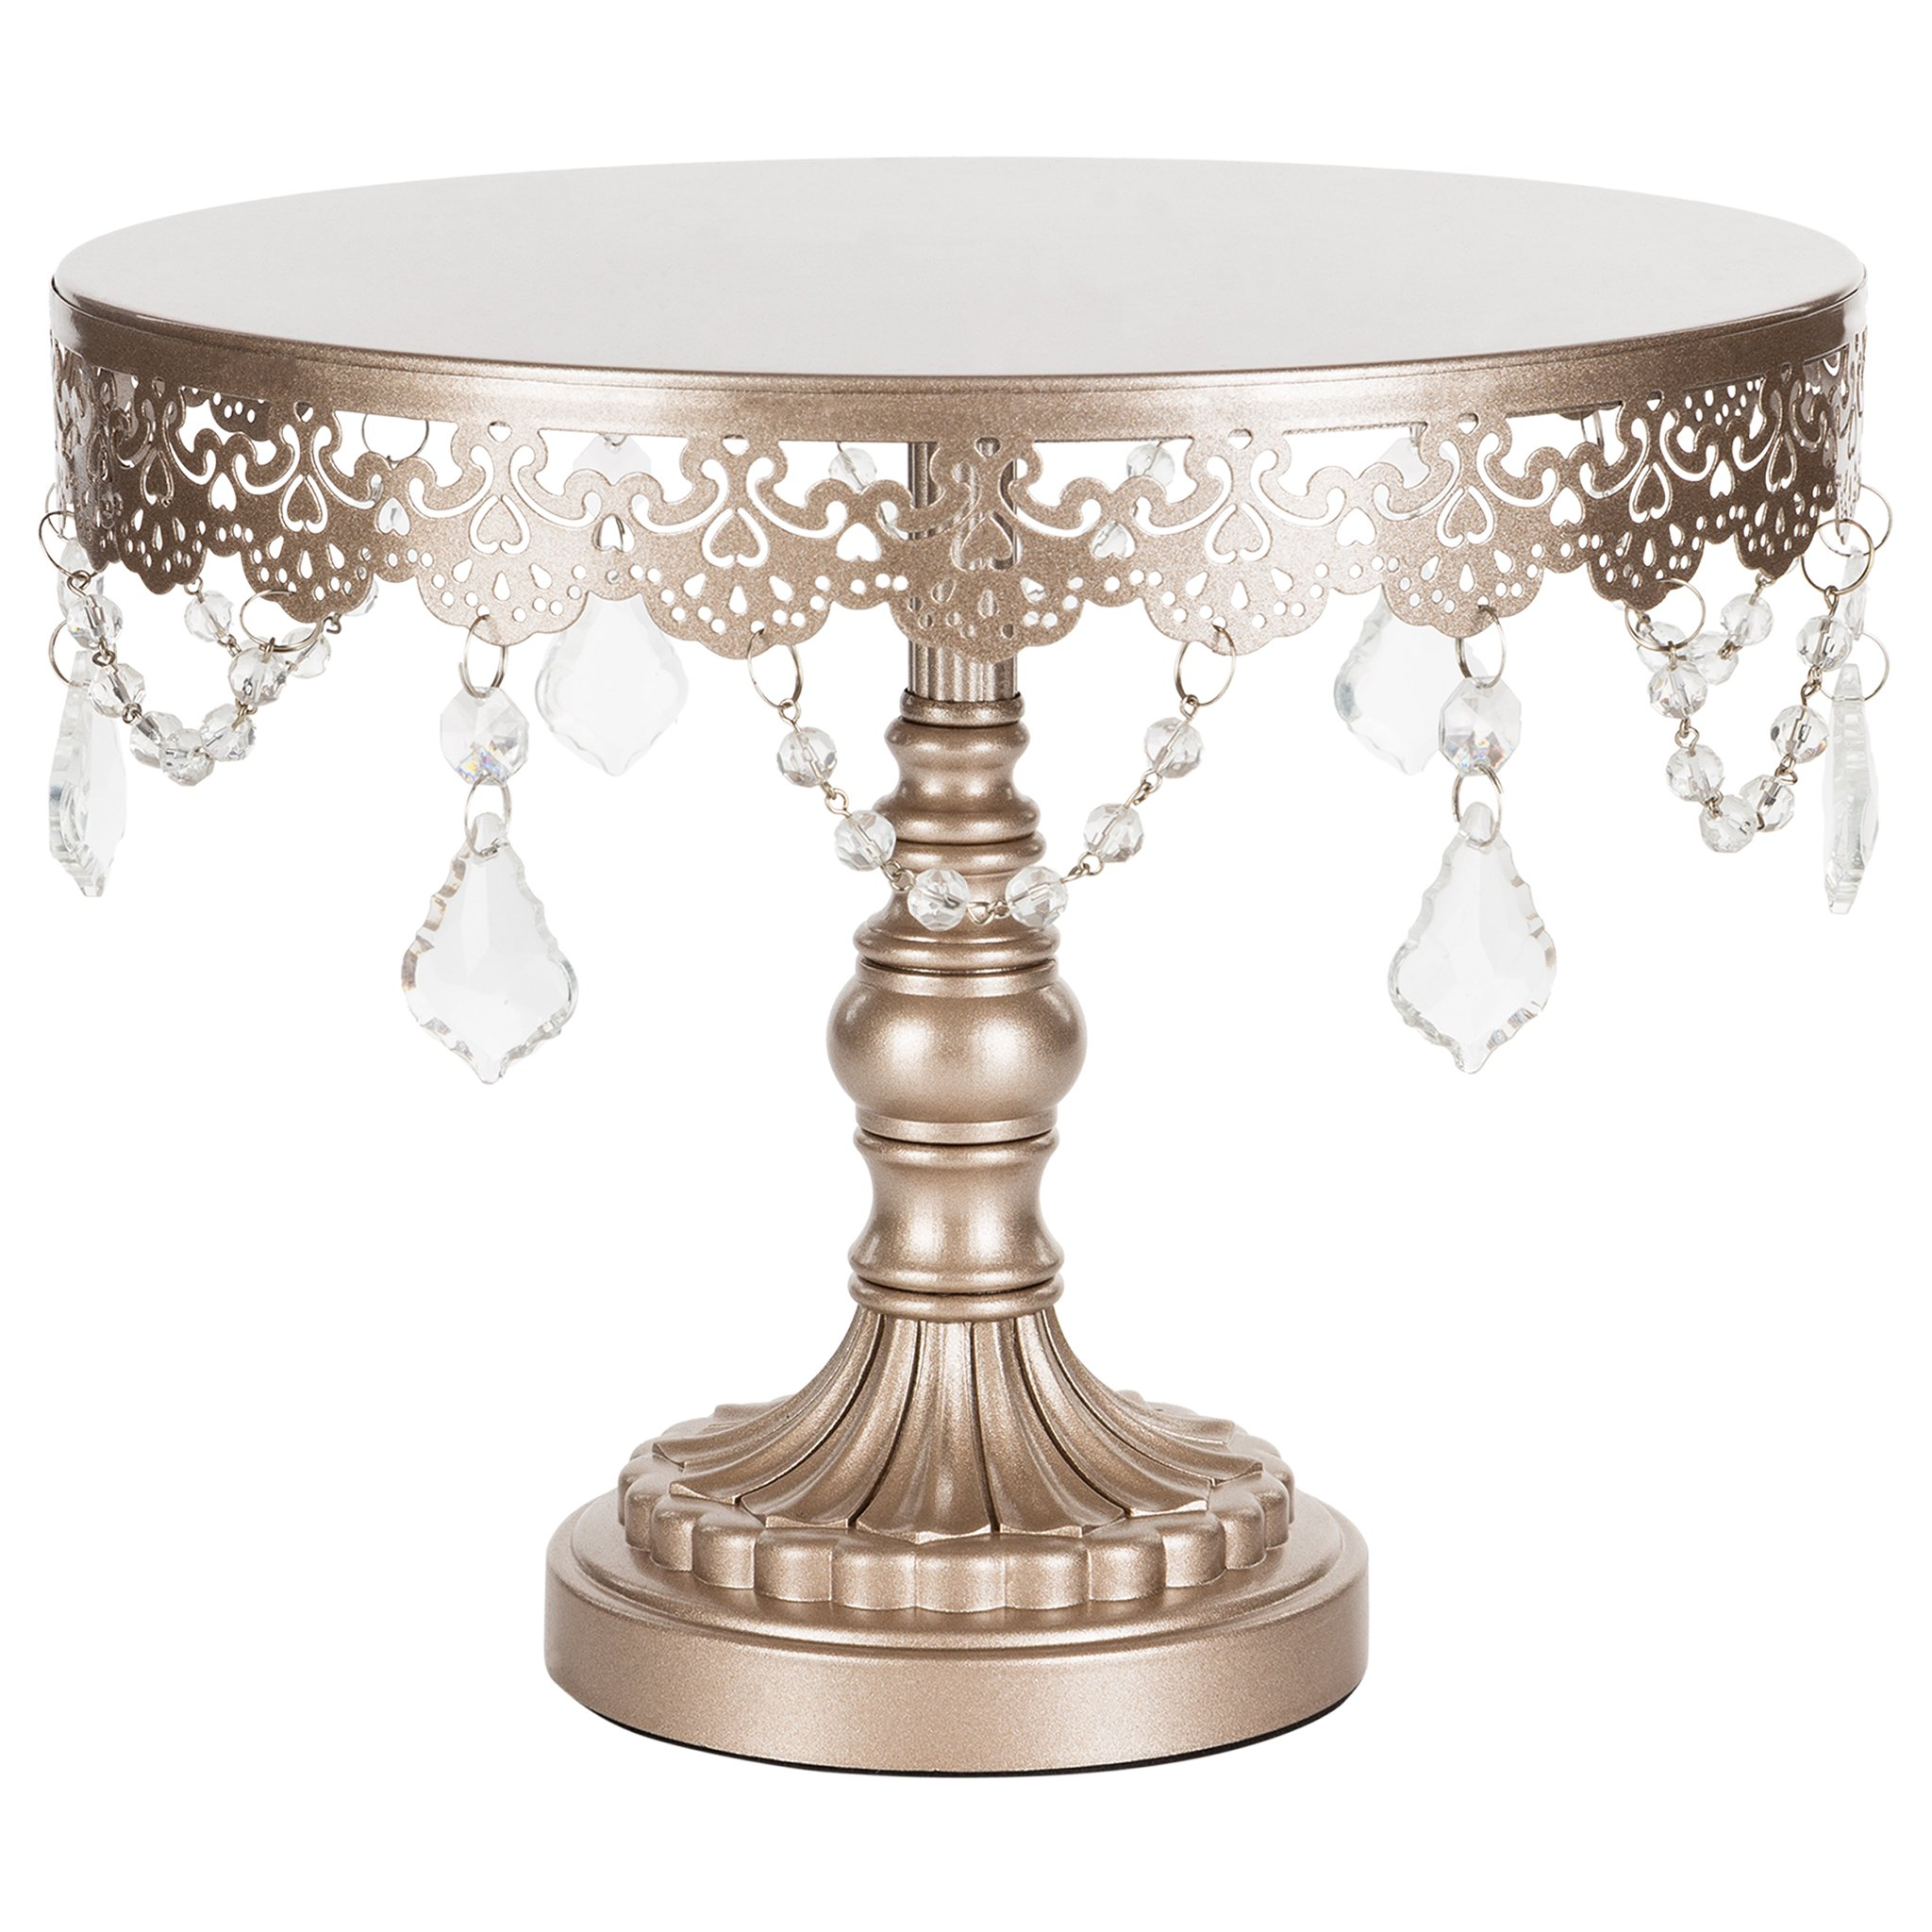 Amalfi Decor 10 Inch Crystal-Draped Round Metal Cake Stand (Lavender Purple) | Stainless Steel Frame by